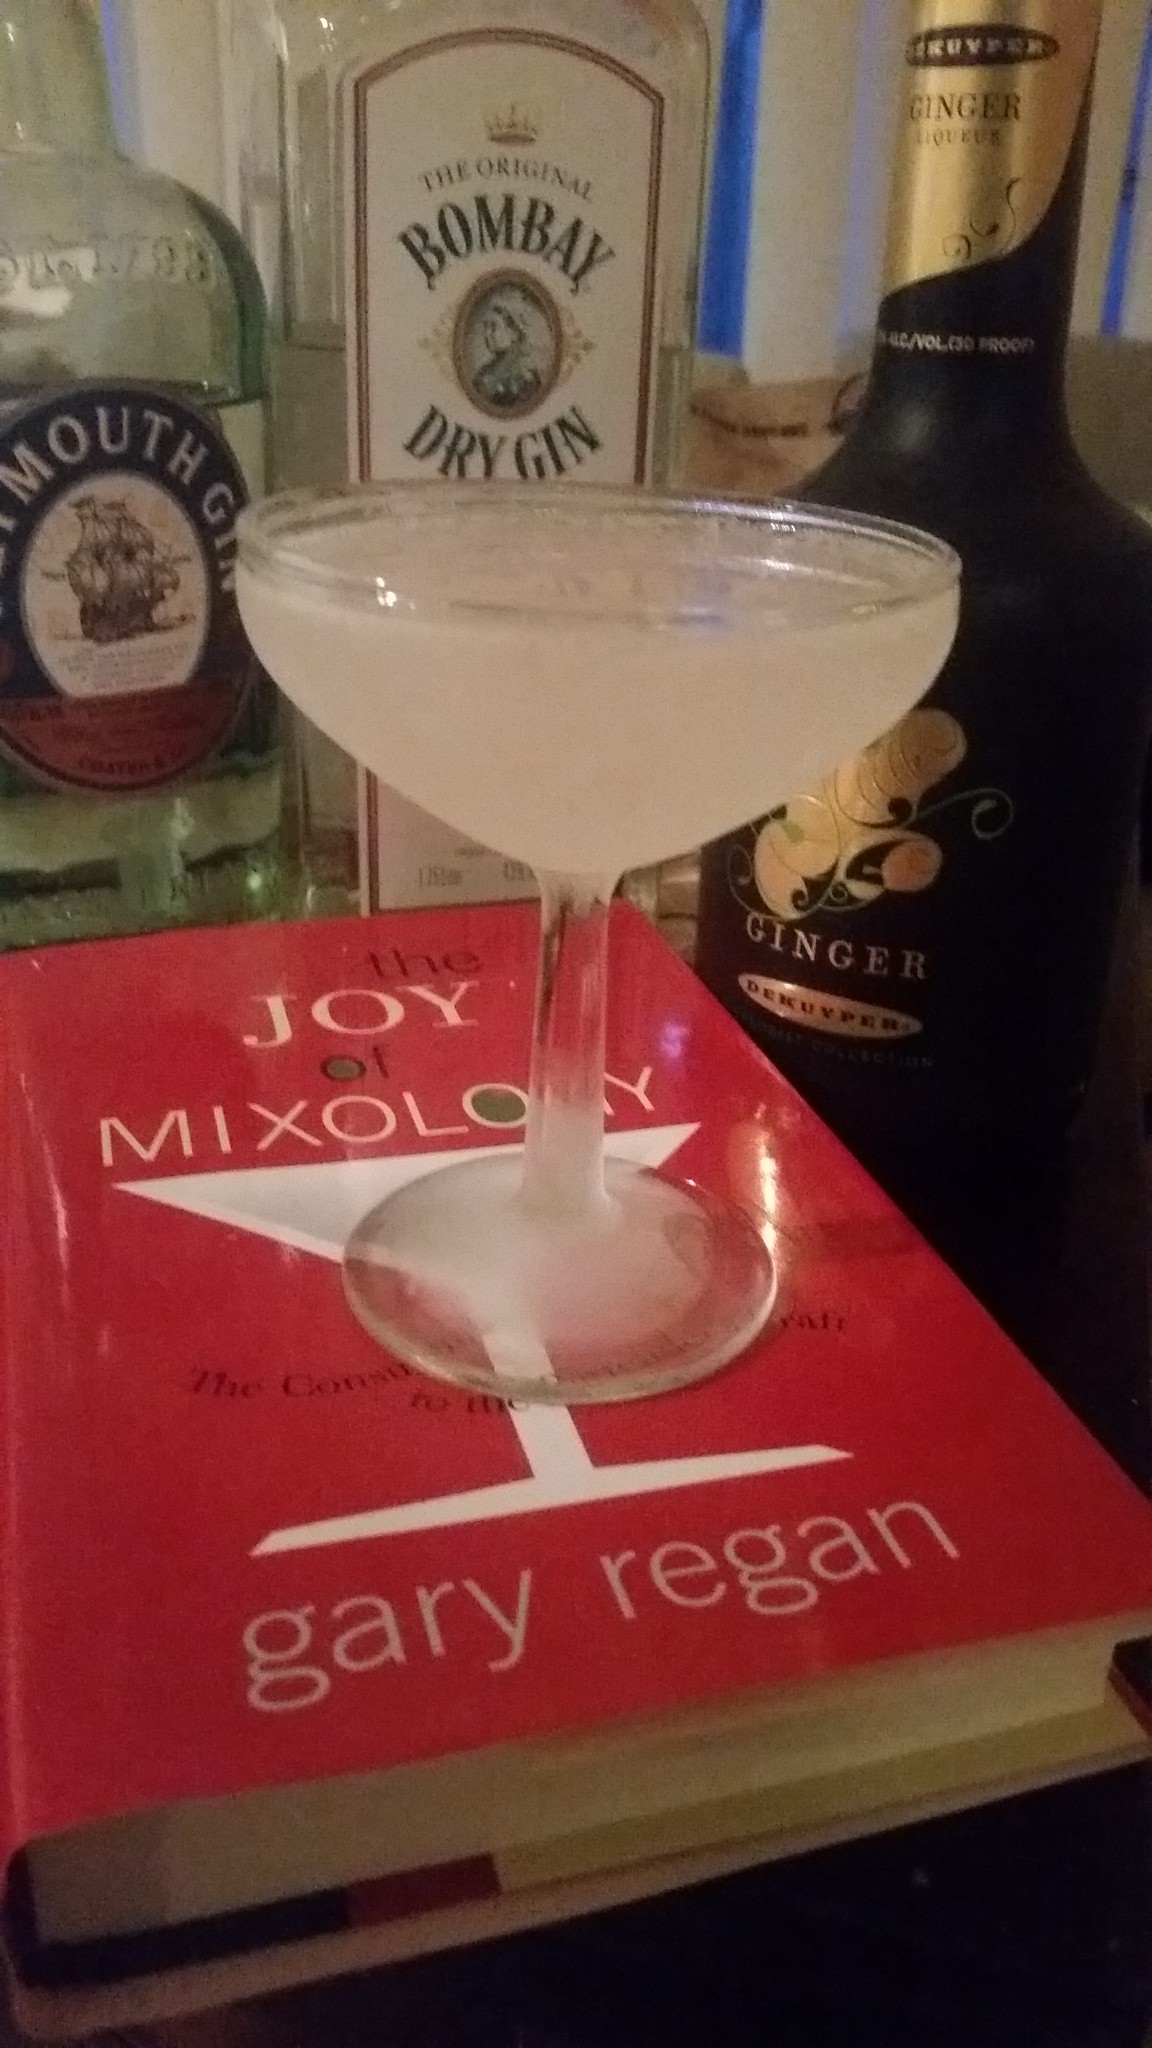 The Chatham Cocktail.